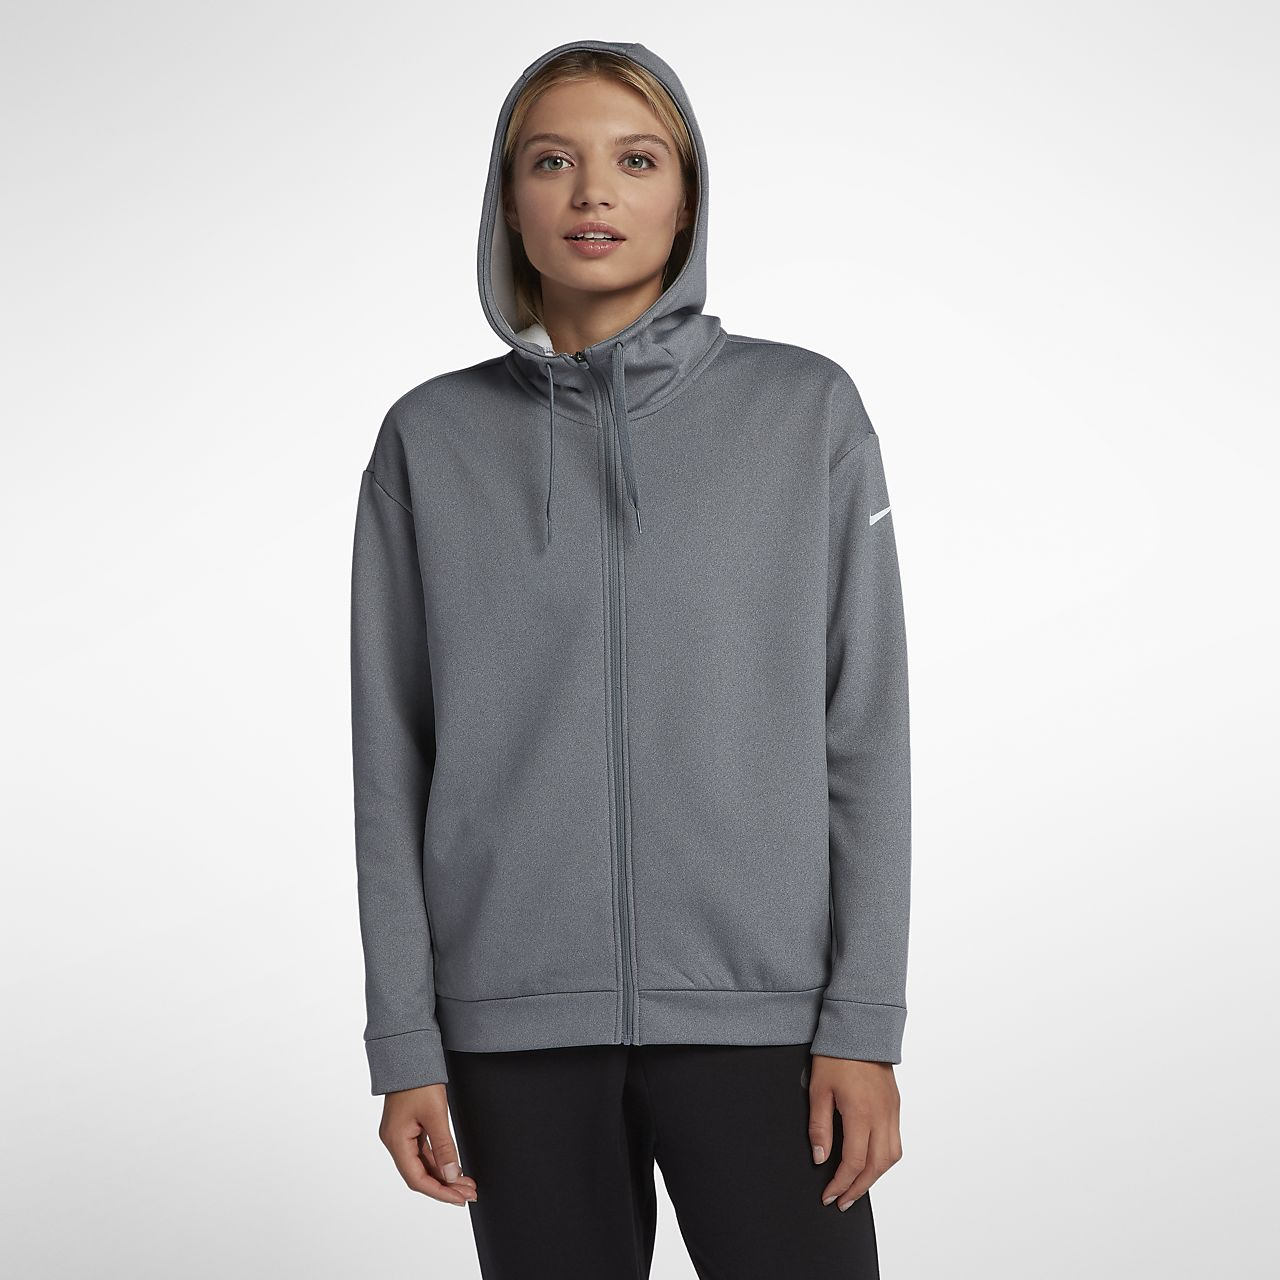 bceb9de491b1e Nike Dri-FIT Therma Women s Full-Zip Training Hoodie. Nike.com